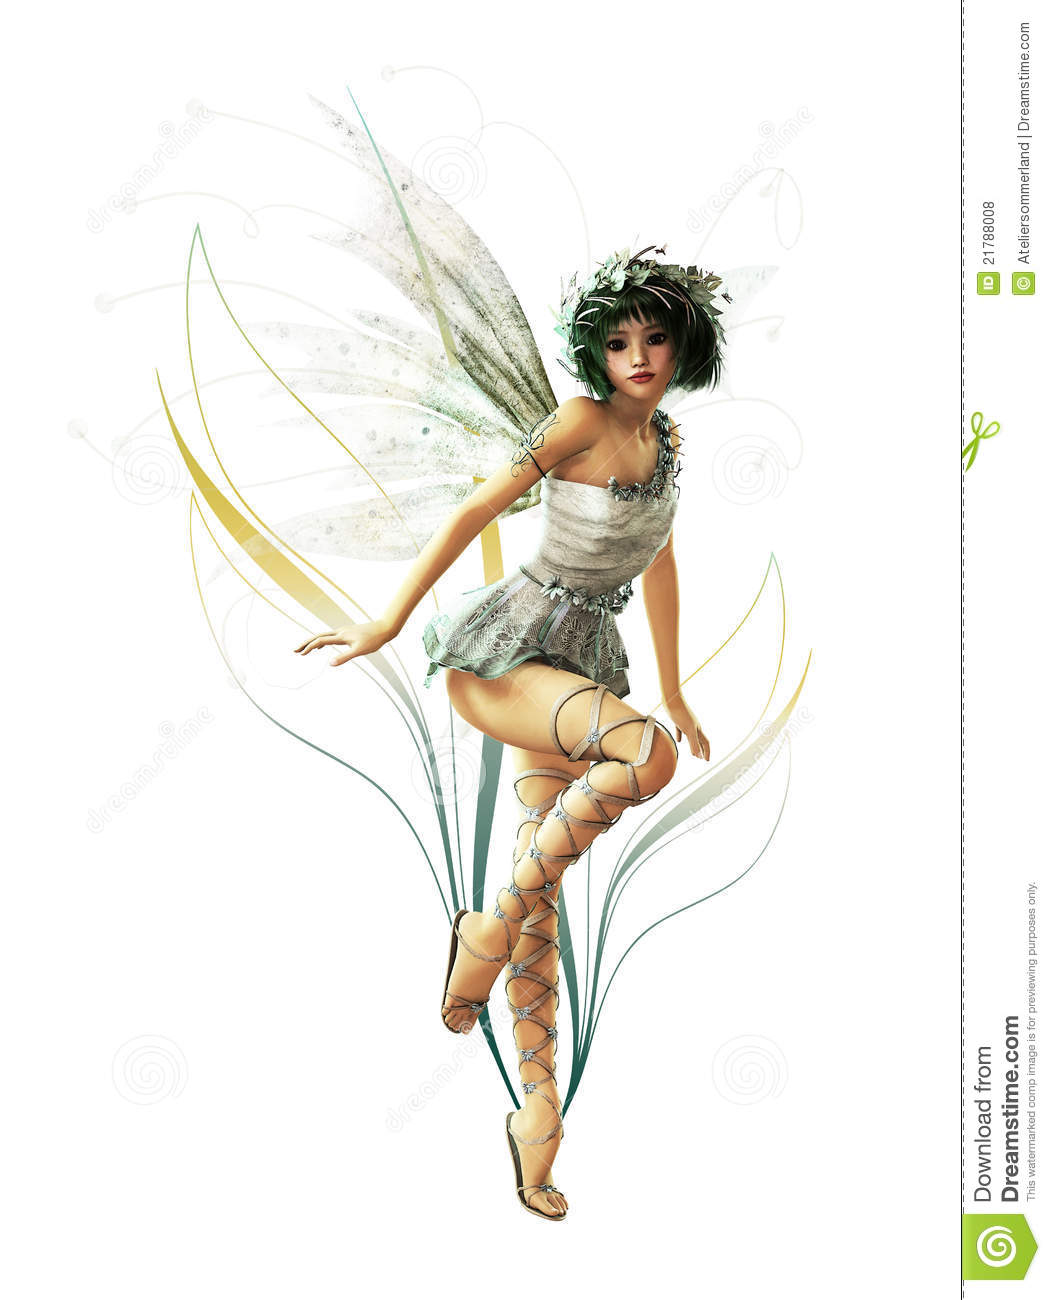 Silver Pixie CA Ornament Royalty Free Stock Photos - Image: 21788008